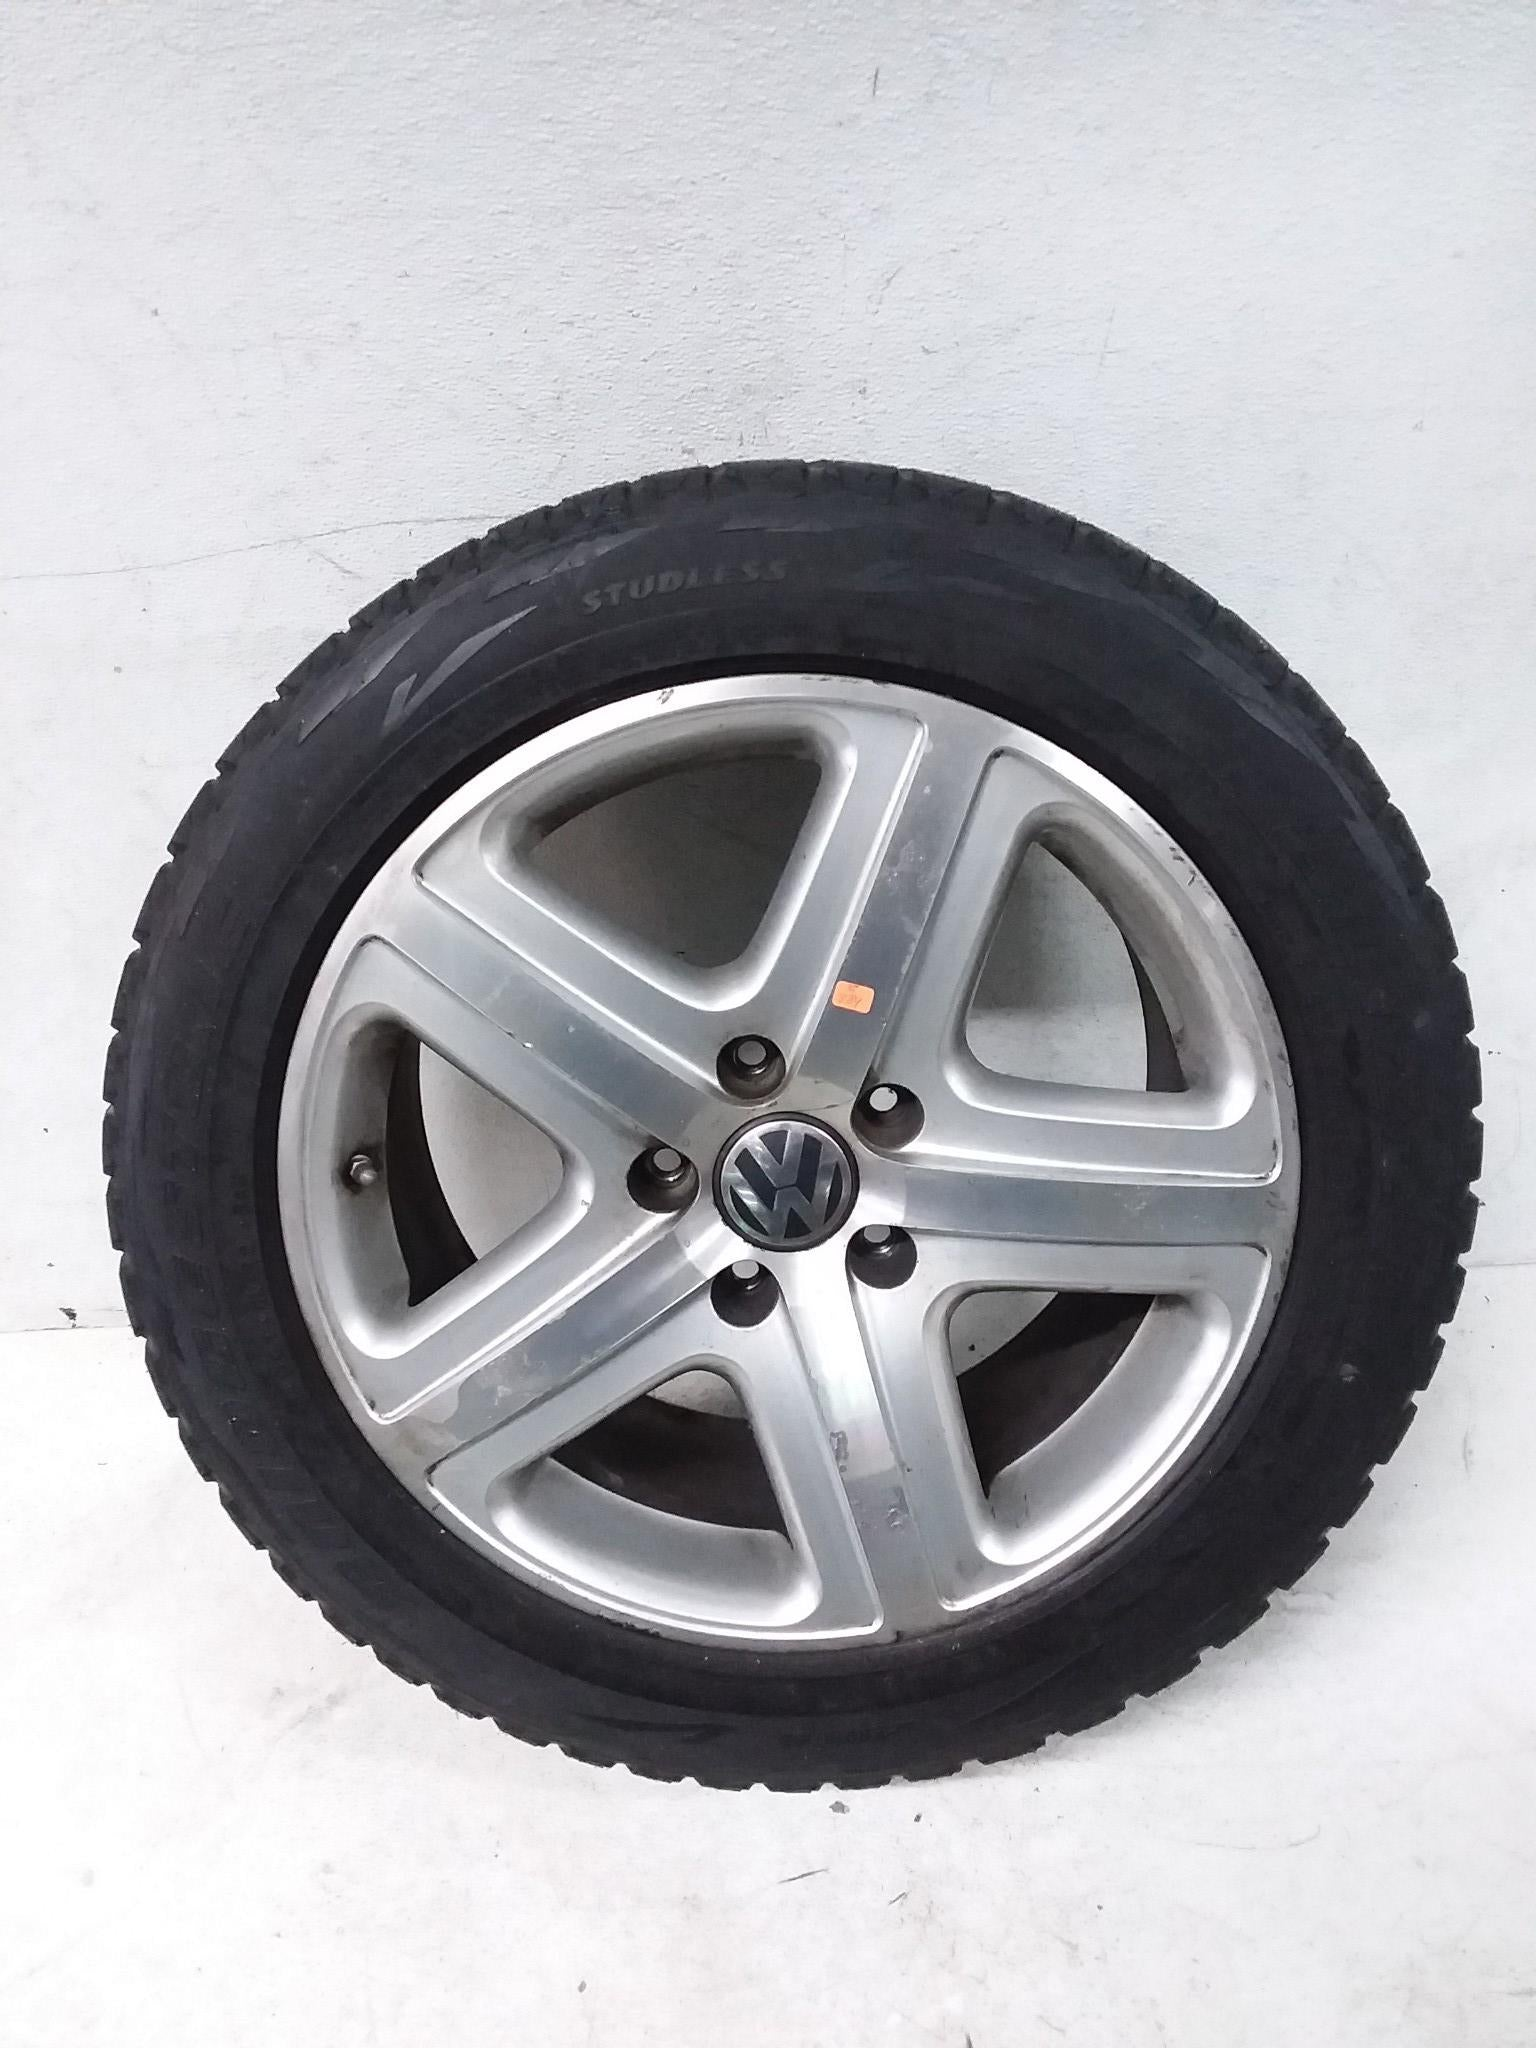 2004-2010 WV TOUAREG  RIM WHEEL & TIRE 275/45/R19 OEM 7/32nd 7L6601025 OEM